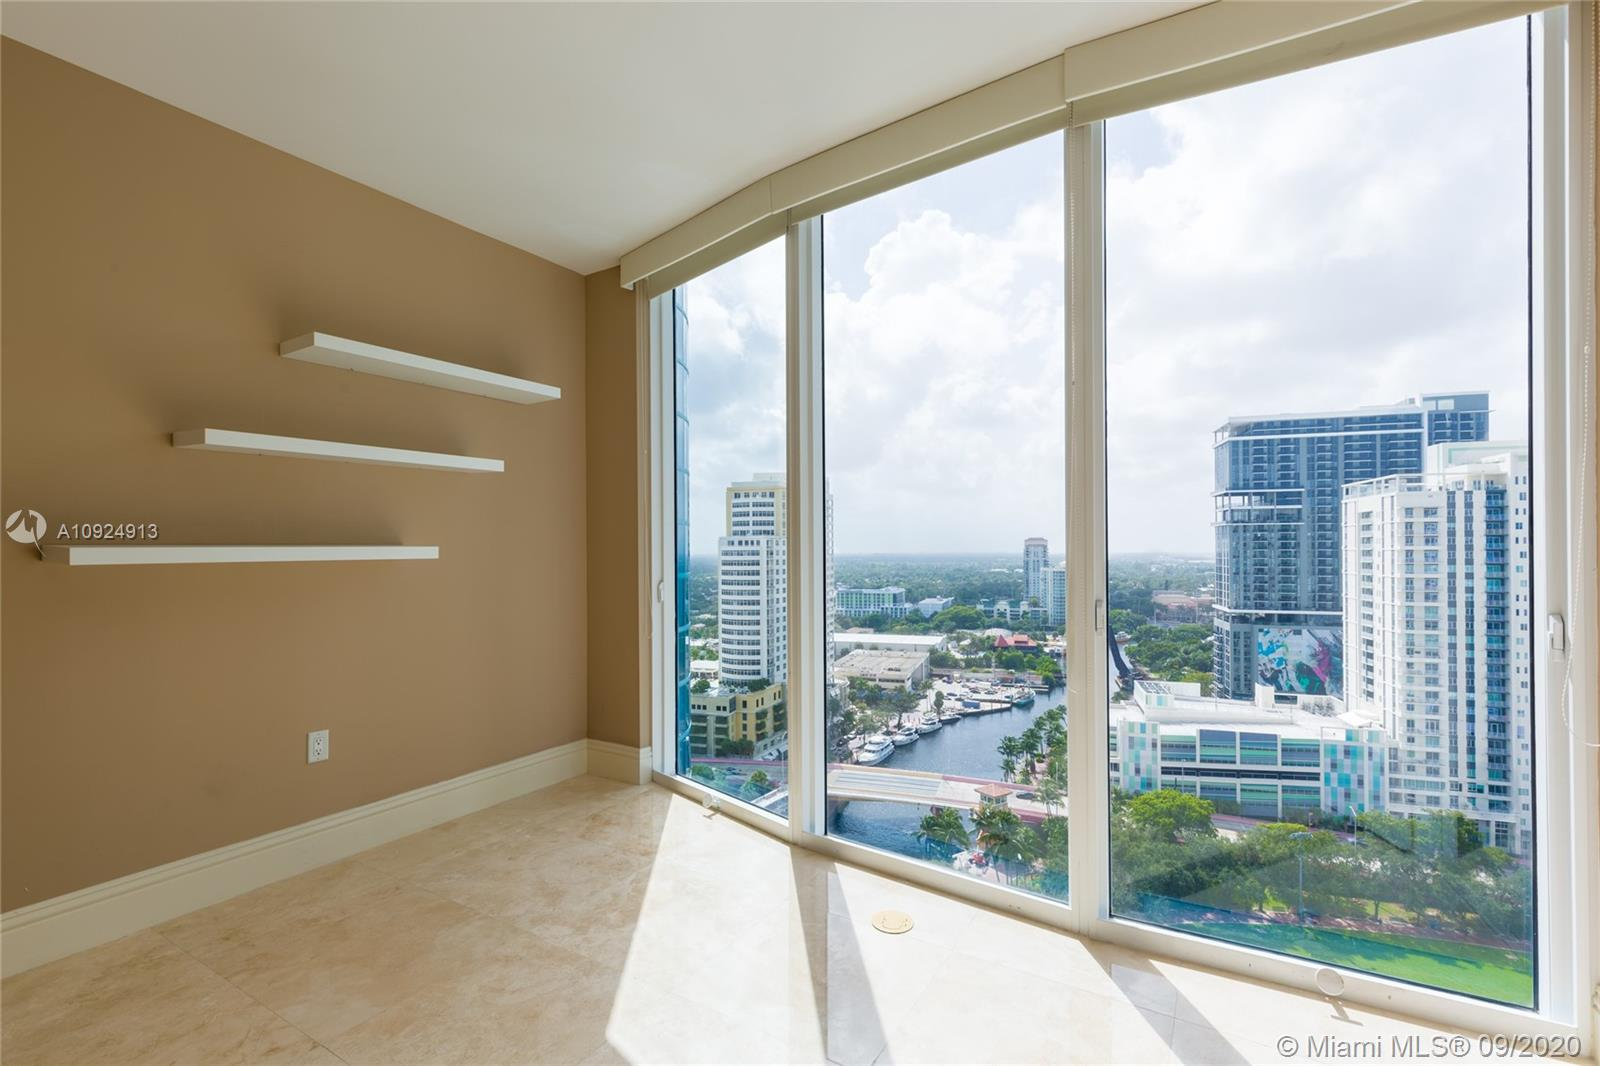 Welcome to your perfect urban riverfront home in Ft Lauderdale's landmark tower.  Located on the New River in the heart of downtown & famous Las Olas Blvd. This special 2/2.5 offers huge views from every room showcasing the vibrant New River, Riverwalk, tropical pool deck, city park and city skyline. Round radius floor to ceiling glass plus large balcony with over 240 sq ft makes this lovely condo a very unique property.  Elevators sweep you to your semi private foyer on the 22nd floor. Enjoy River House's 5 Star lifestyle with 24 hr valet, concierge, huge lobby with Koi ponds, world class fitness center, party rooms and tropical pool deck. $4M renovation underway with no assessments!! New hotel with 2 restaurants and Greenwise grocery store right outside the front doors! Urban+fun!